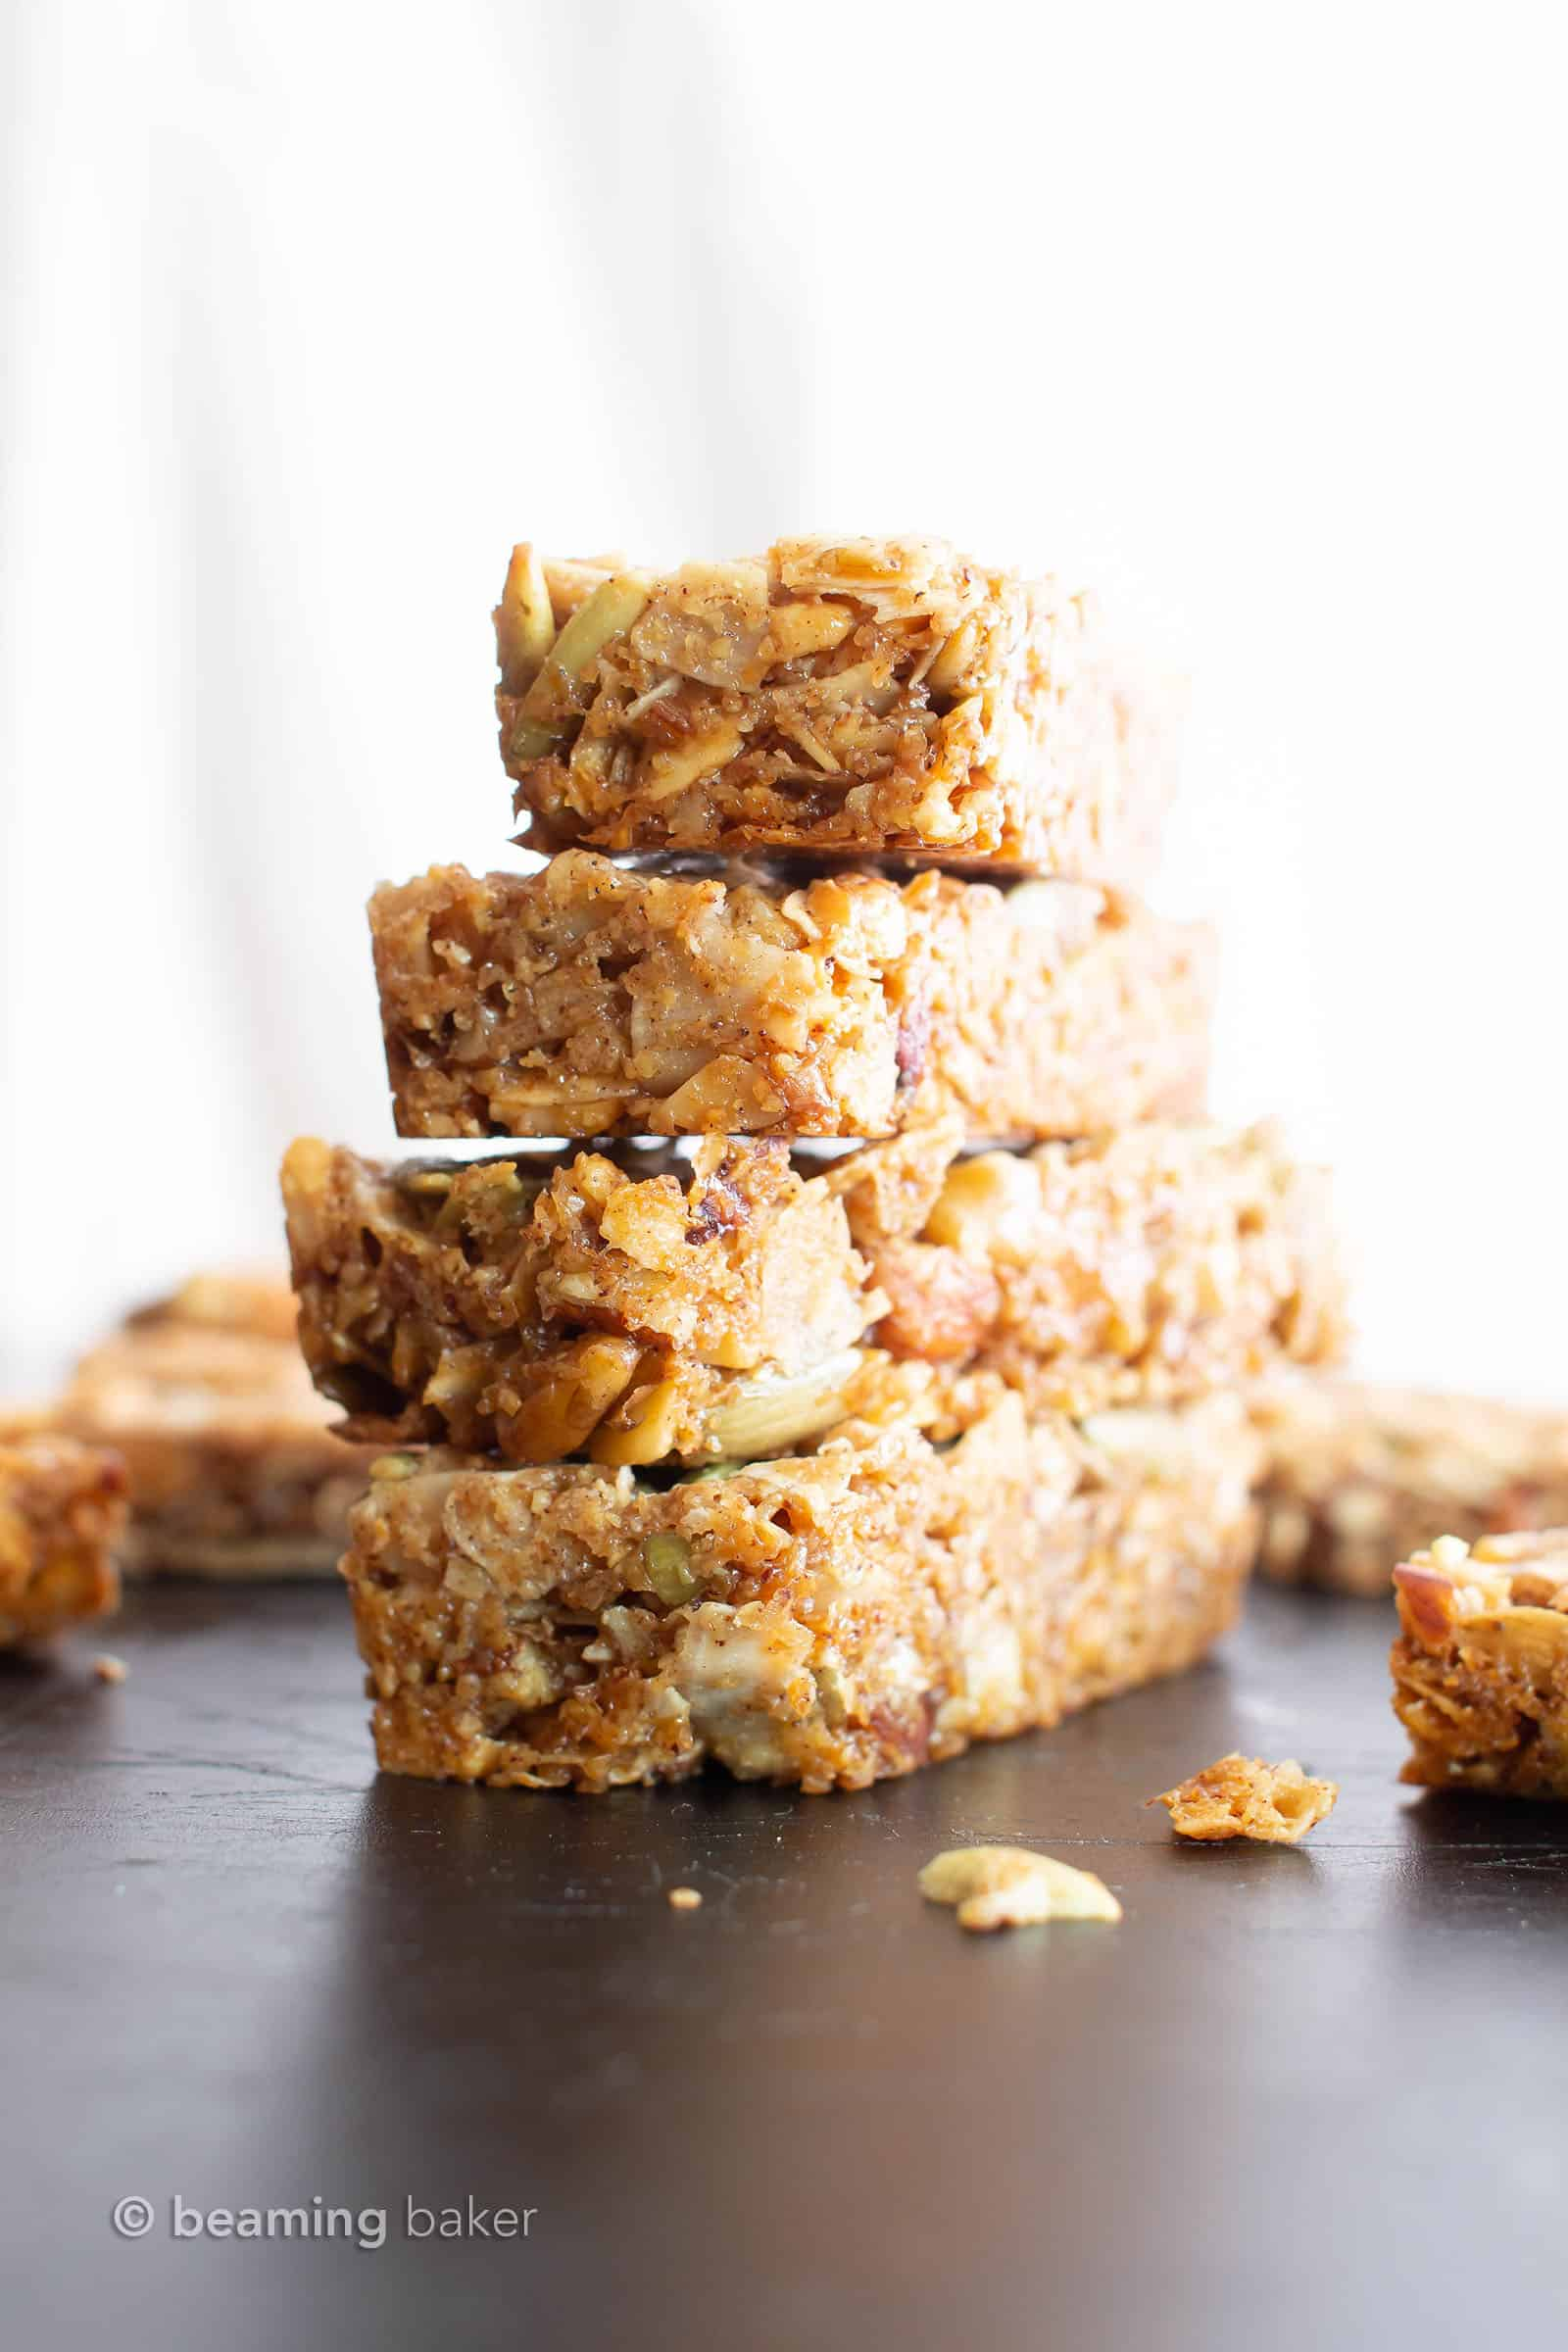 Homemade Paleo Granola Bars (V, GF): the BEST grain free granola bars recipe—chewy & satisfying, packed with nutty crunch and simple, whole ingredients. Gluten Free, Vegan, Paleo, Protein-Rich, Dairy-Free. #Paleo #GrainFree #GranolaBars #Healthy #Snacks | Recipe at BeamingBaker.com